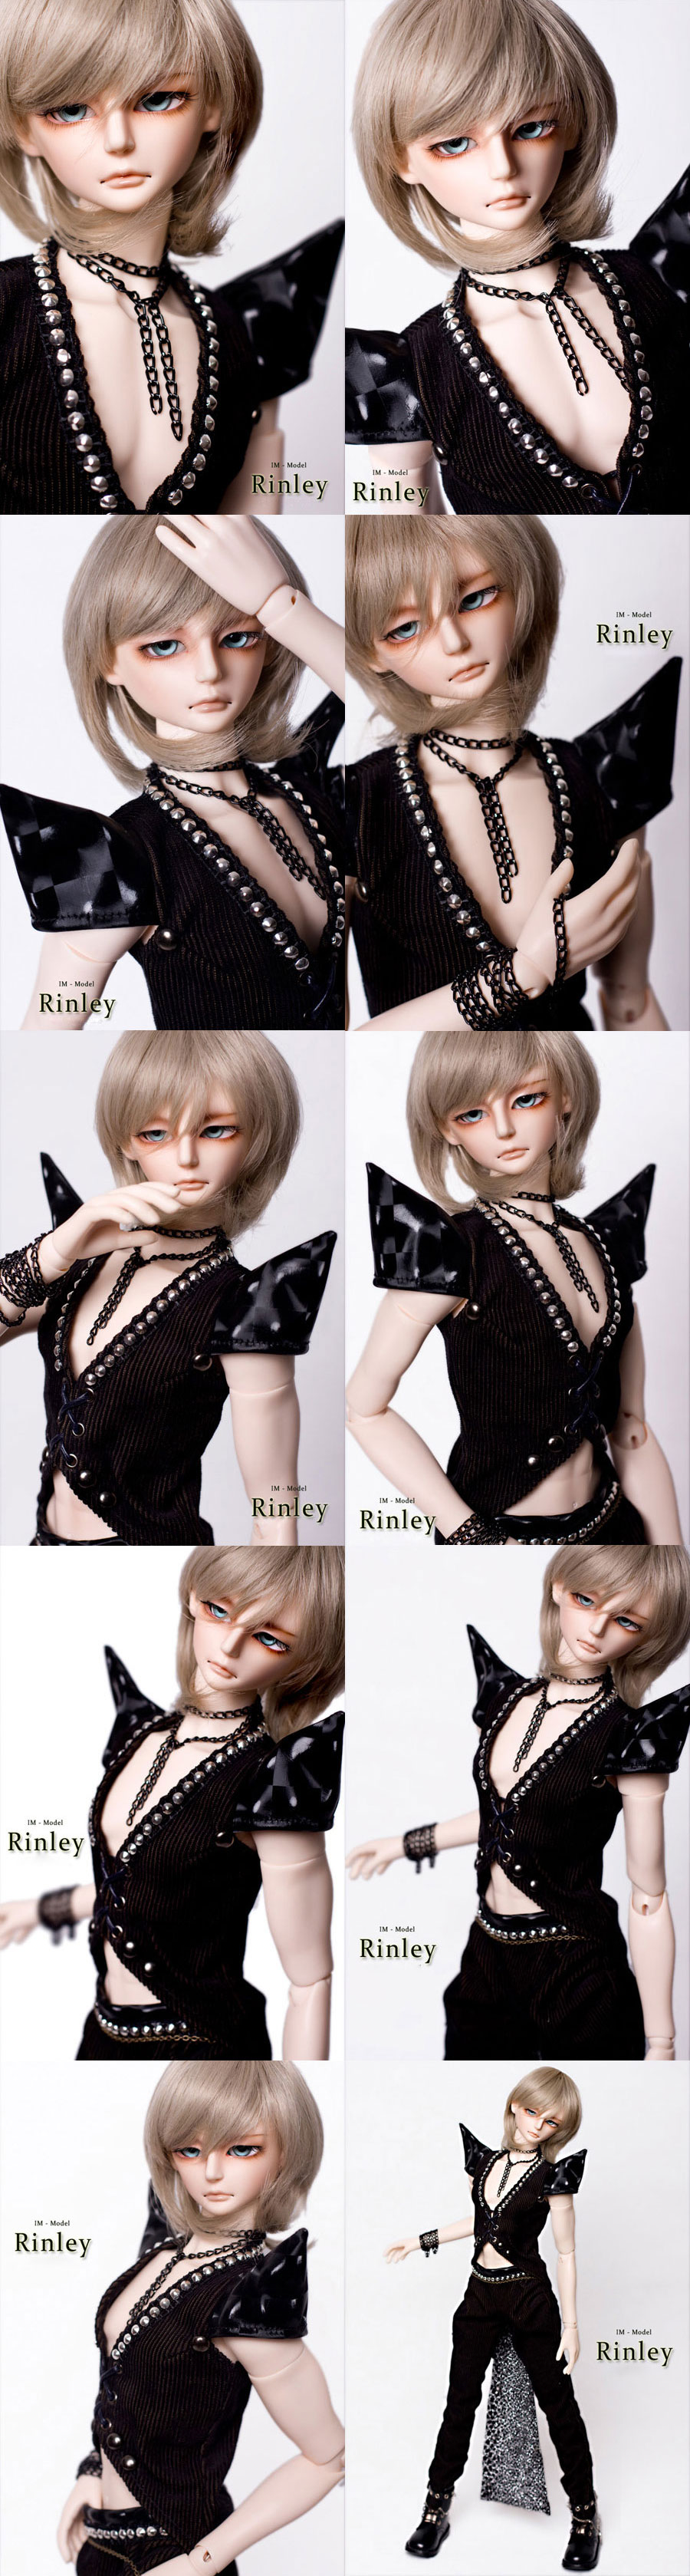 BJD Rinley 58cm Boy Ball-jointed Doll